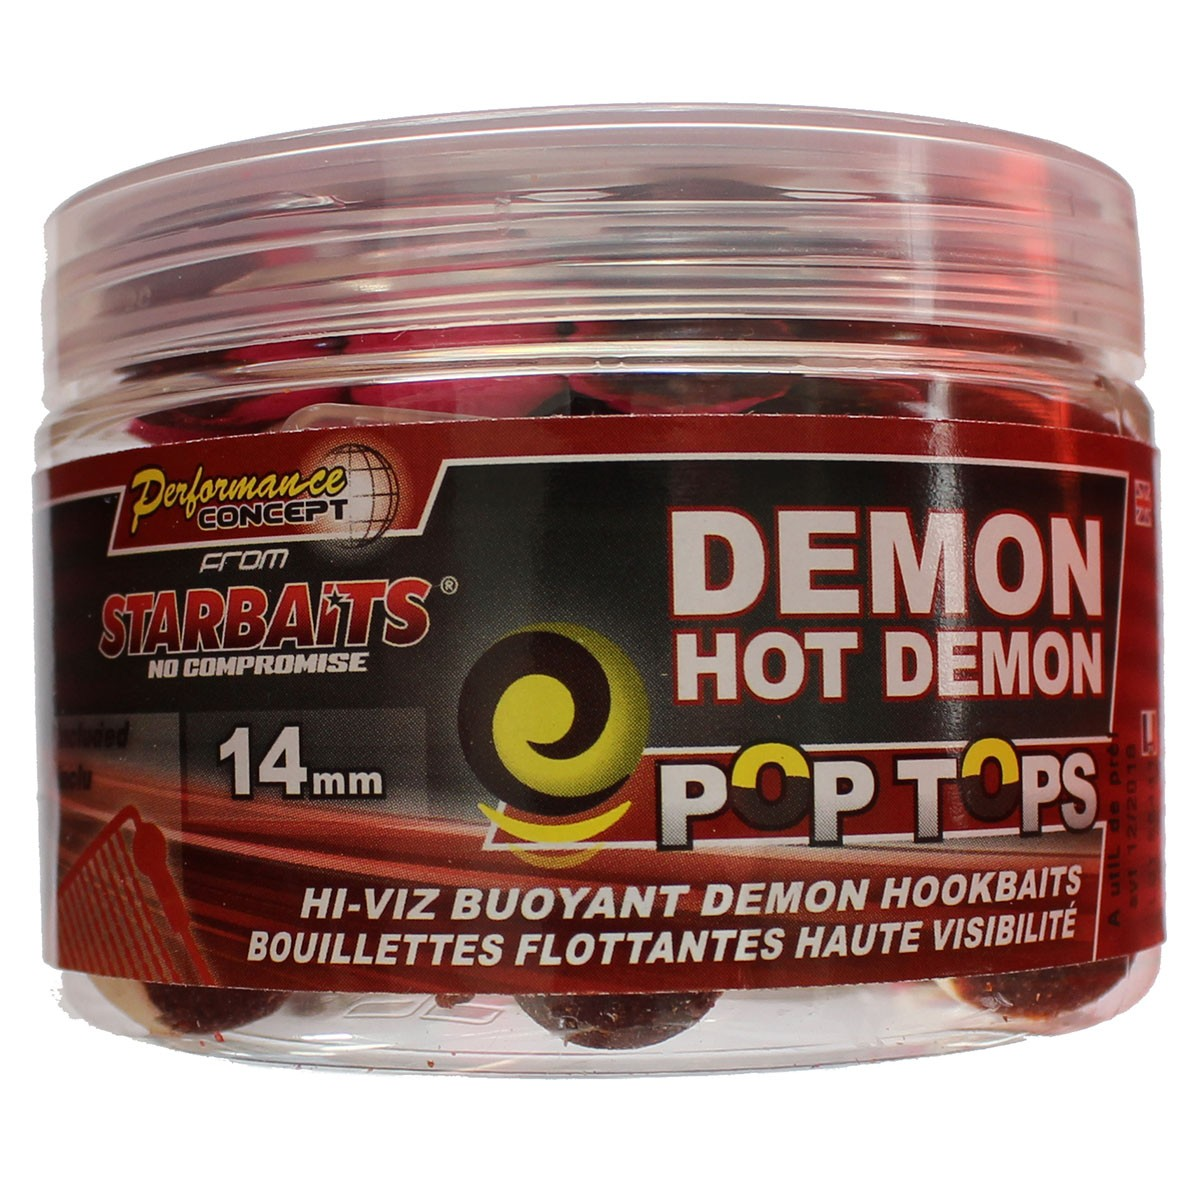 StarBaits Demon Hot Demon Pop Tops 14mm - плуващи топчета